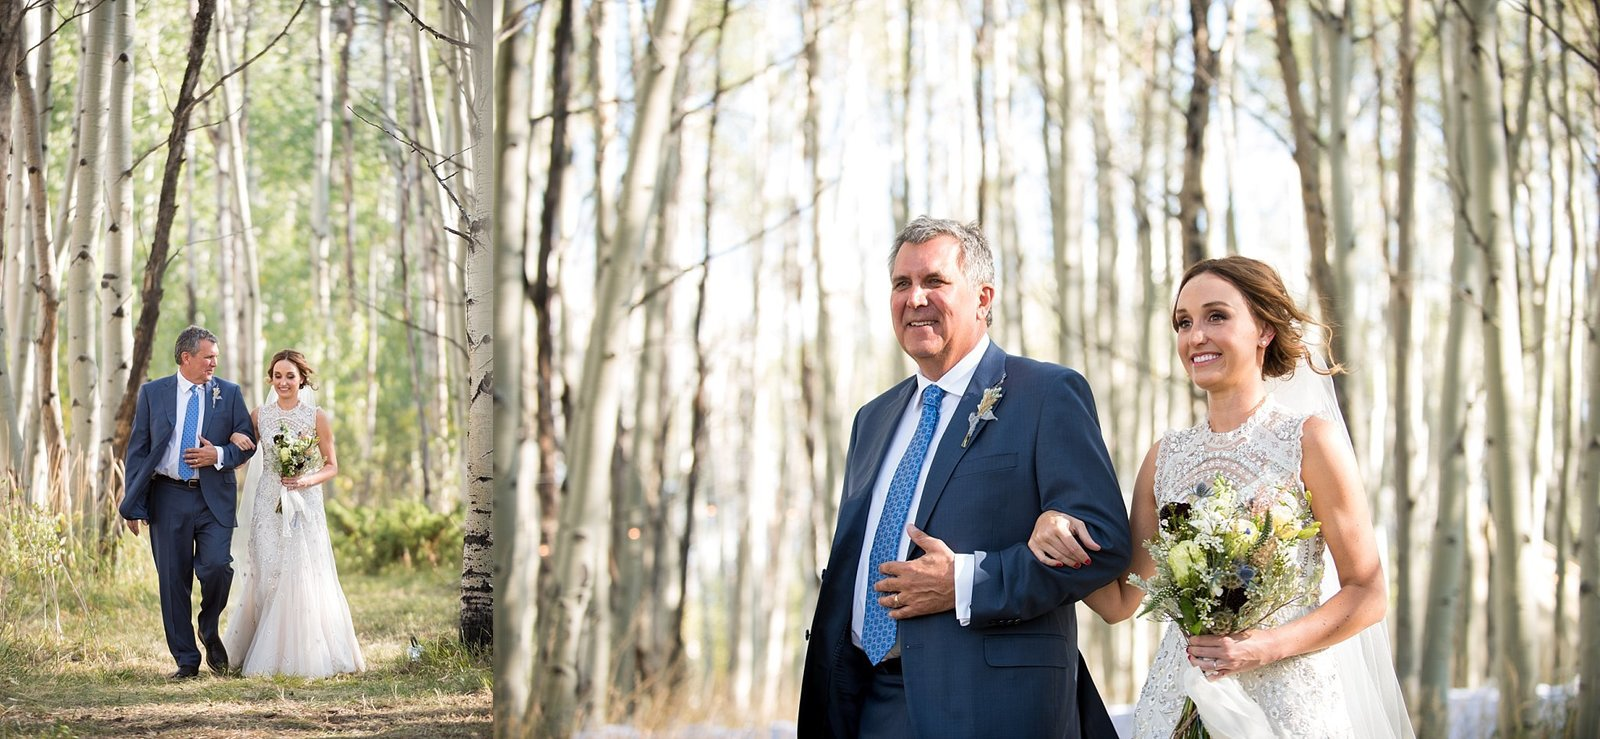 Elizabeth Ann Photography, Denver Wedding Photographer, Fine Art Wedding_2054